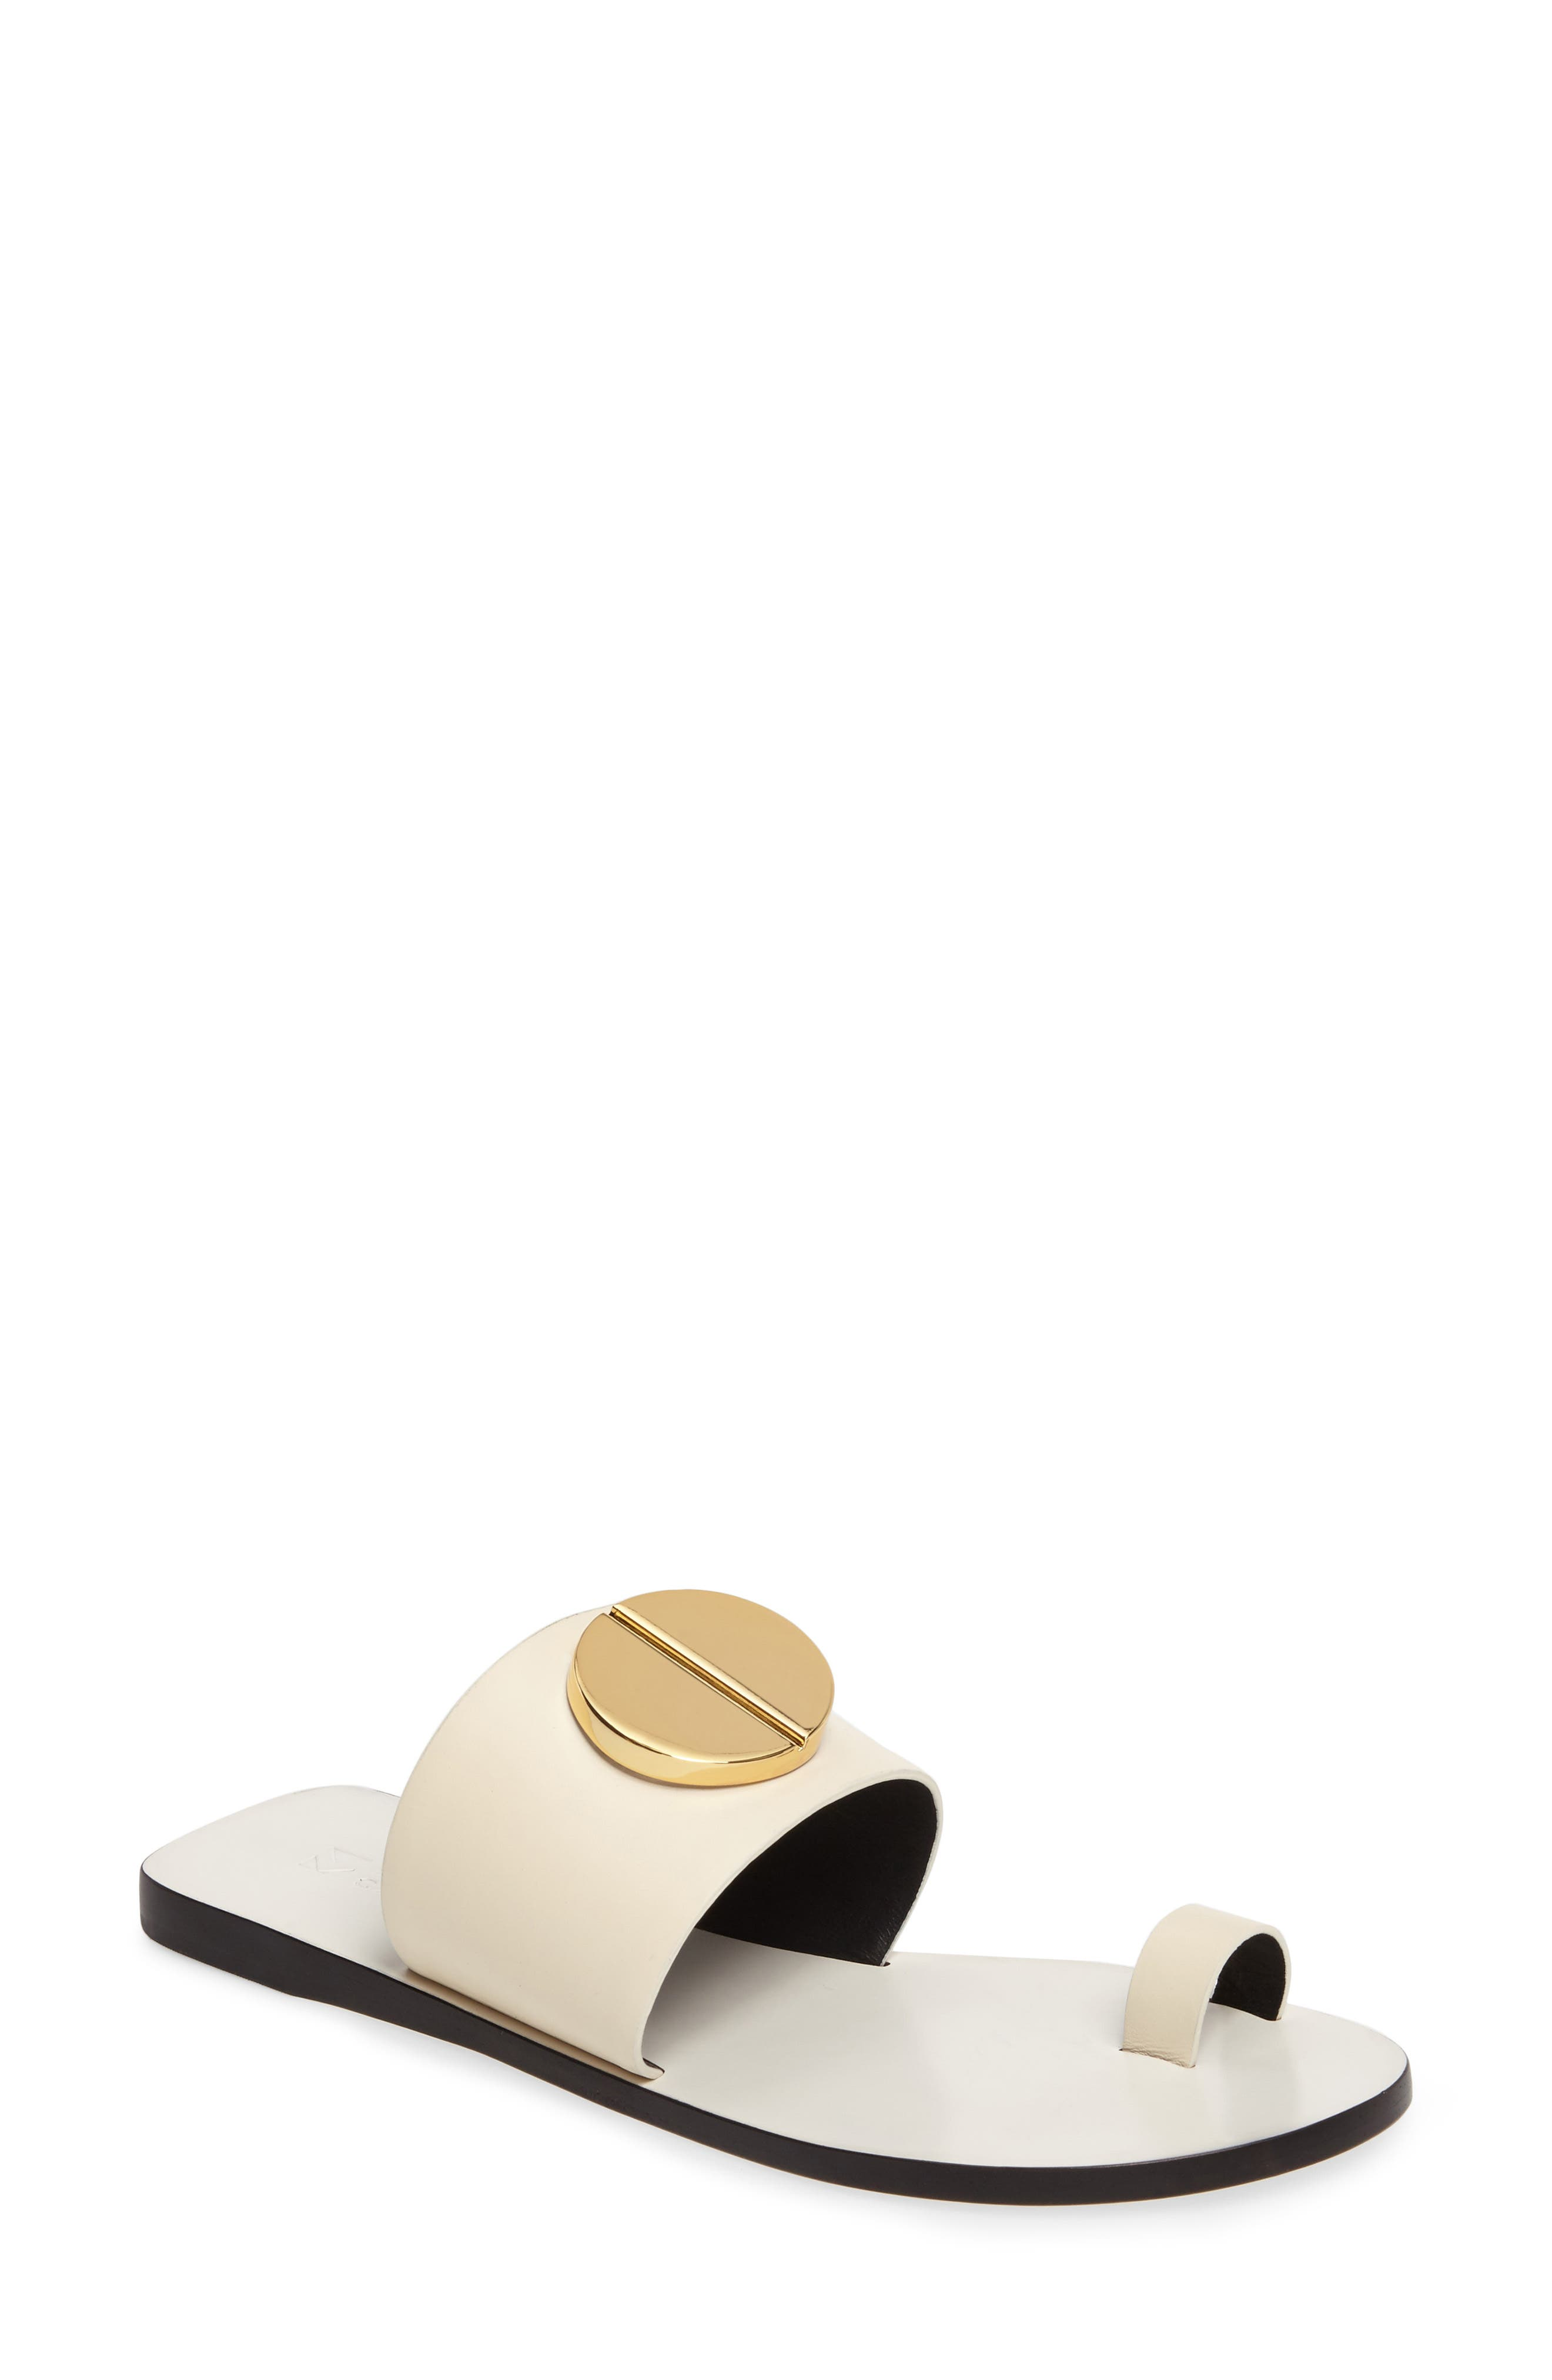 Fallon Toe-Loop Sandal,                             Main thumbnail 2, color,